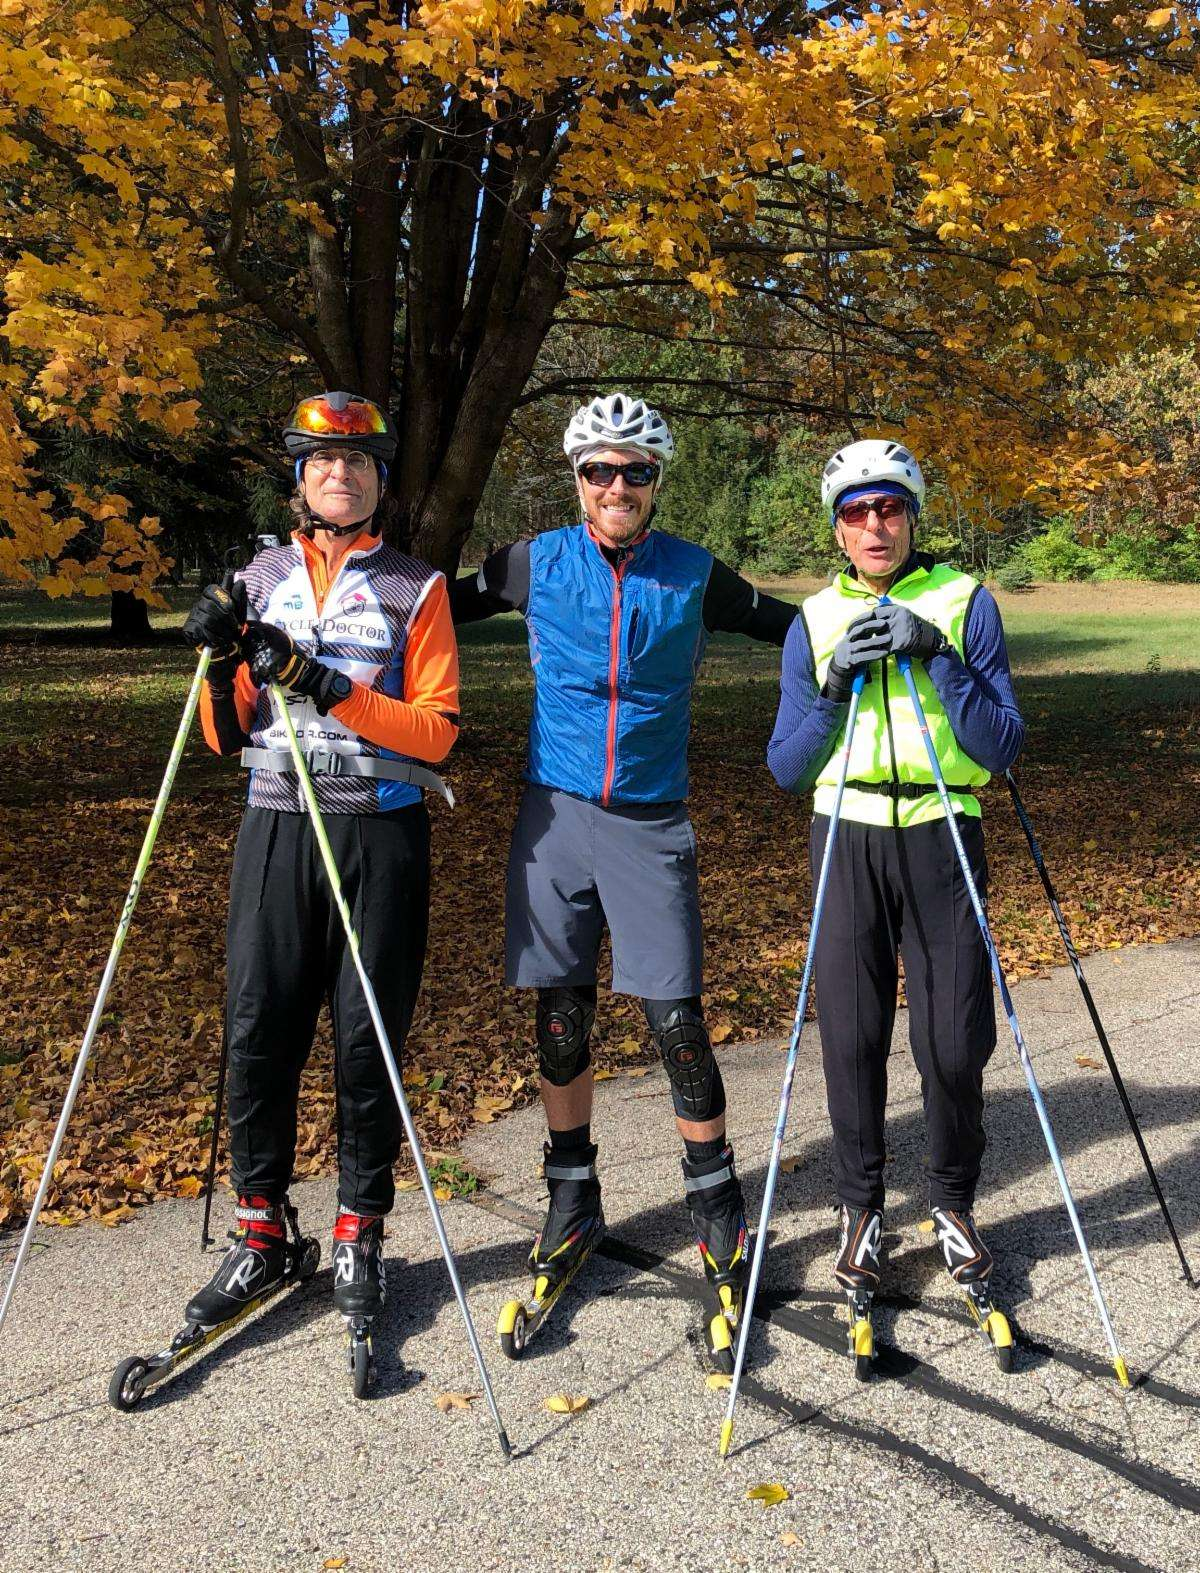 Roller skiing with friends